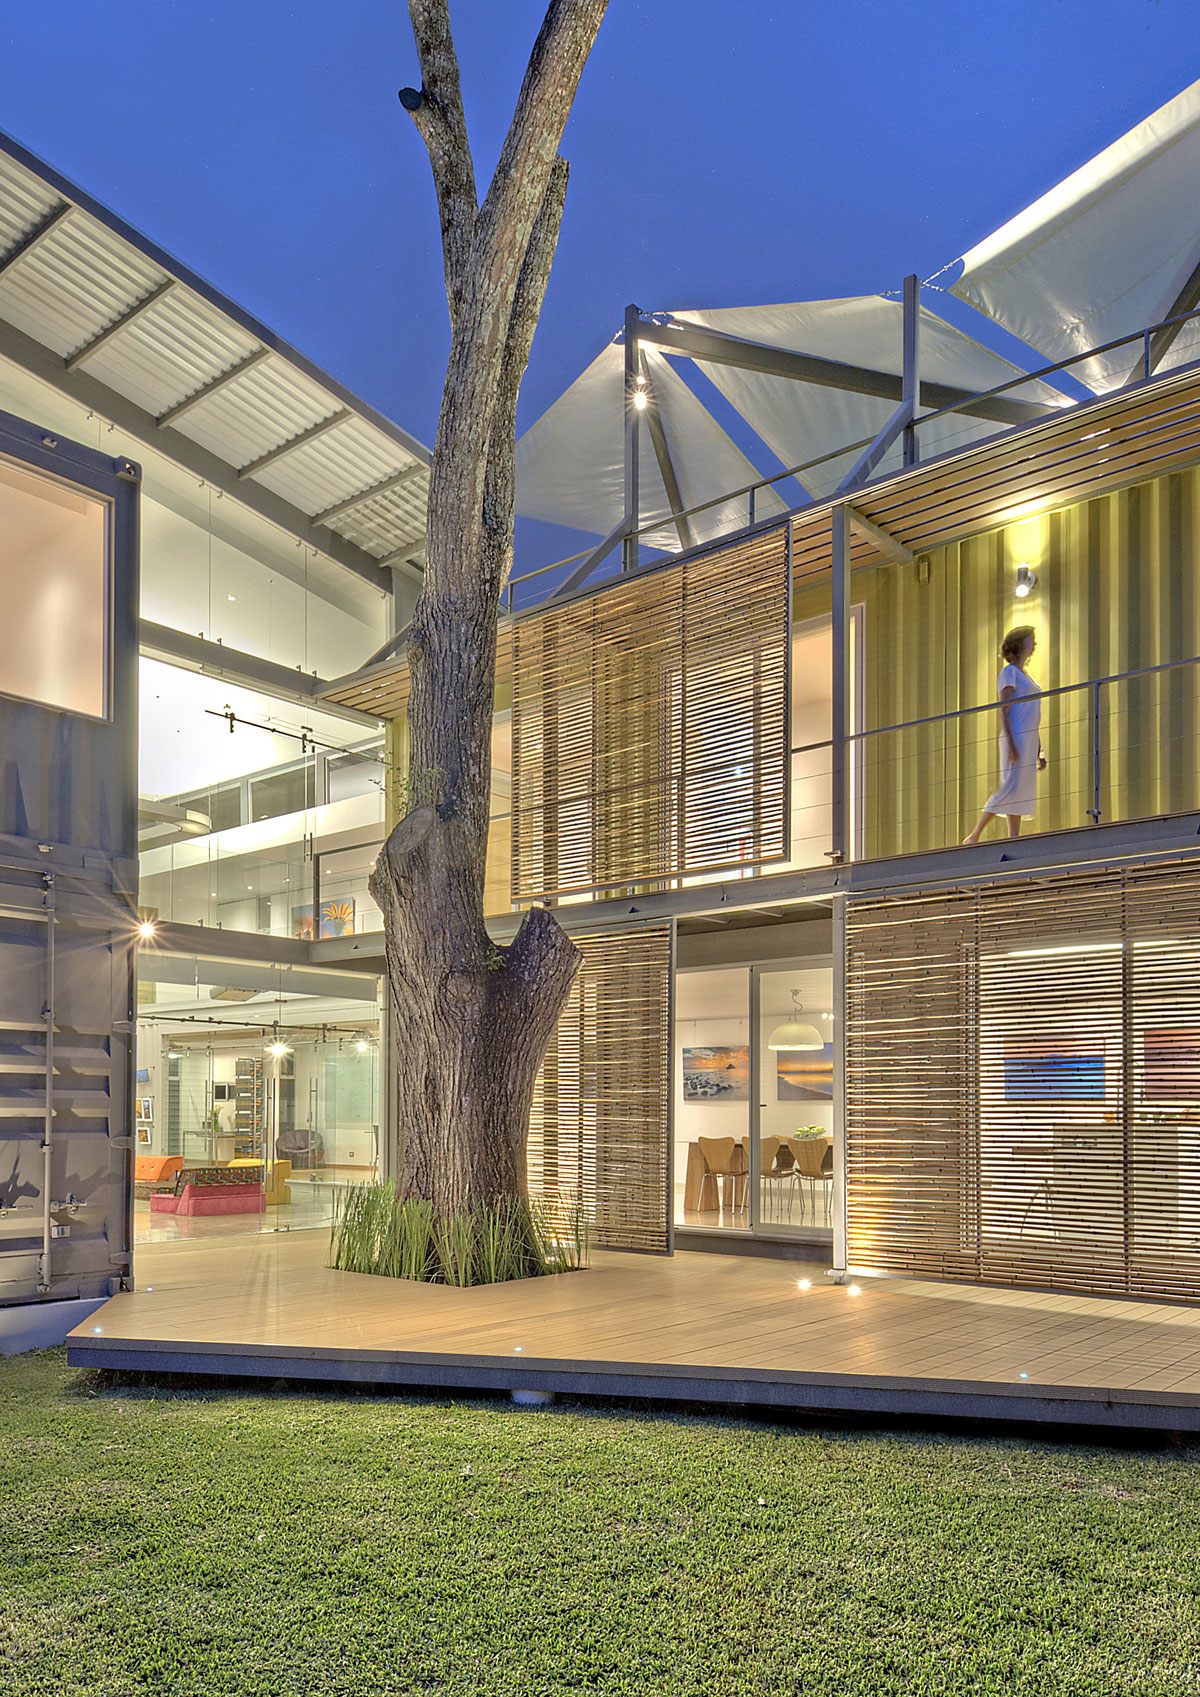 stunning-2-story-home-8-shipping-containers-13